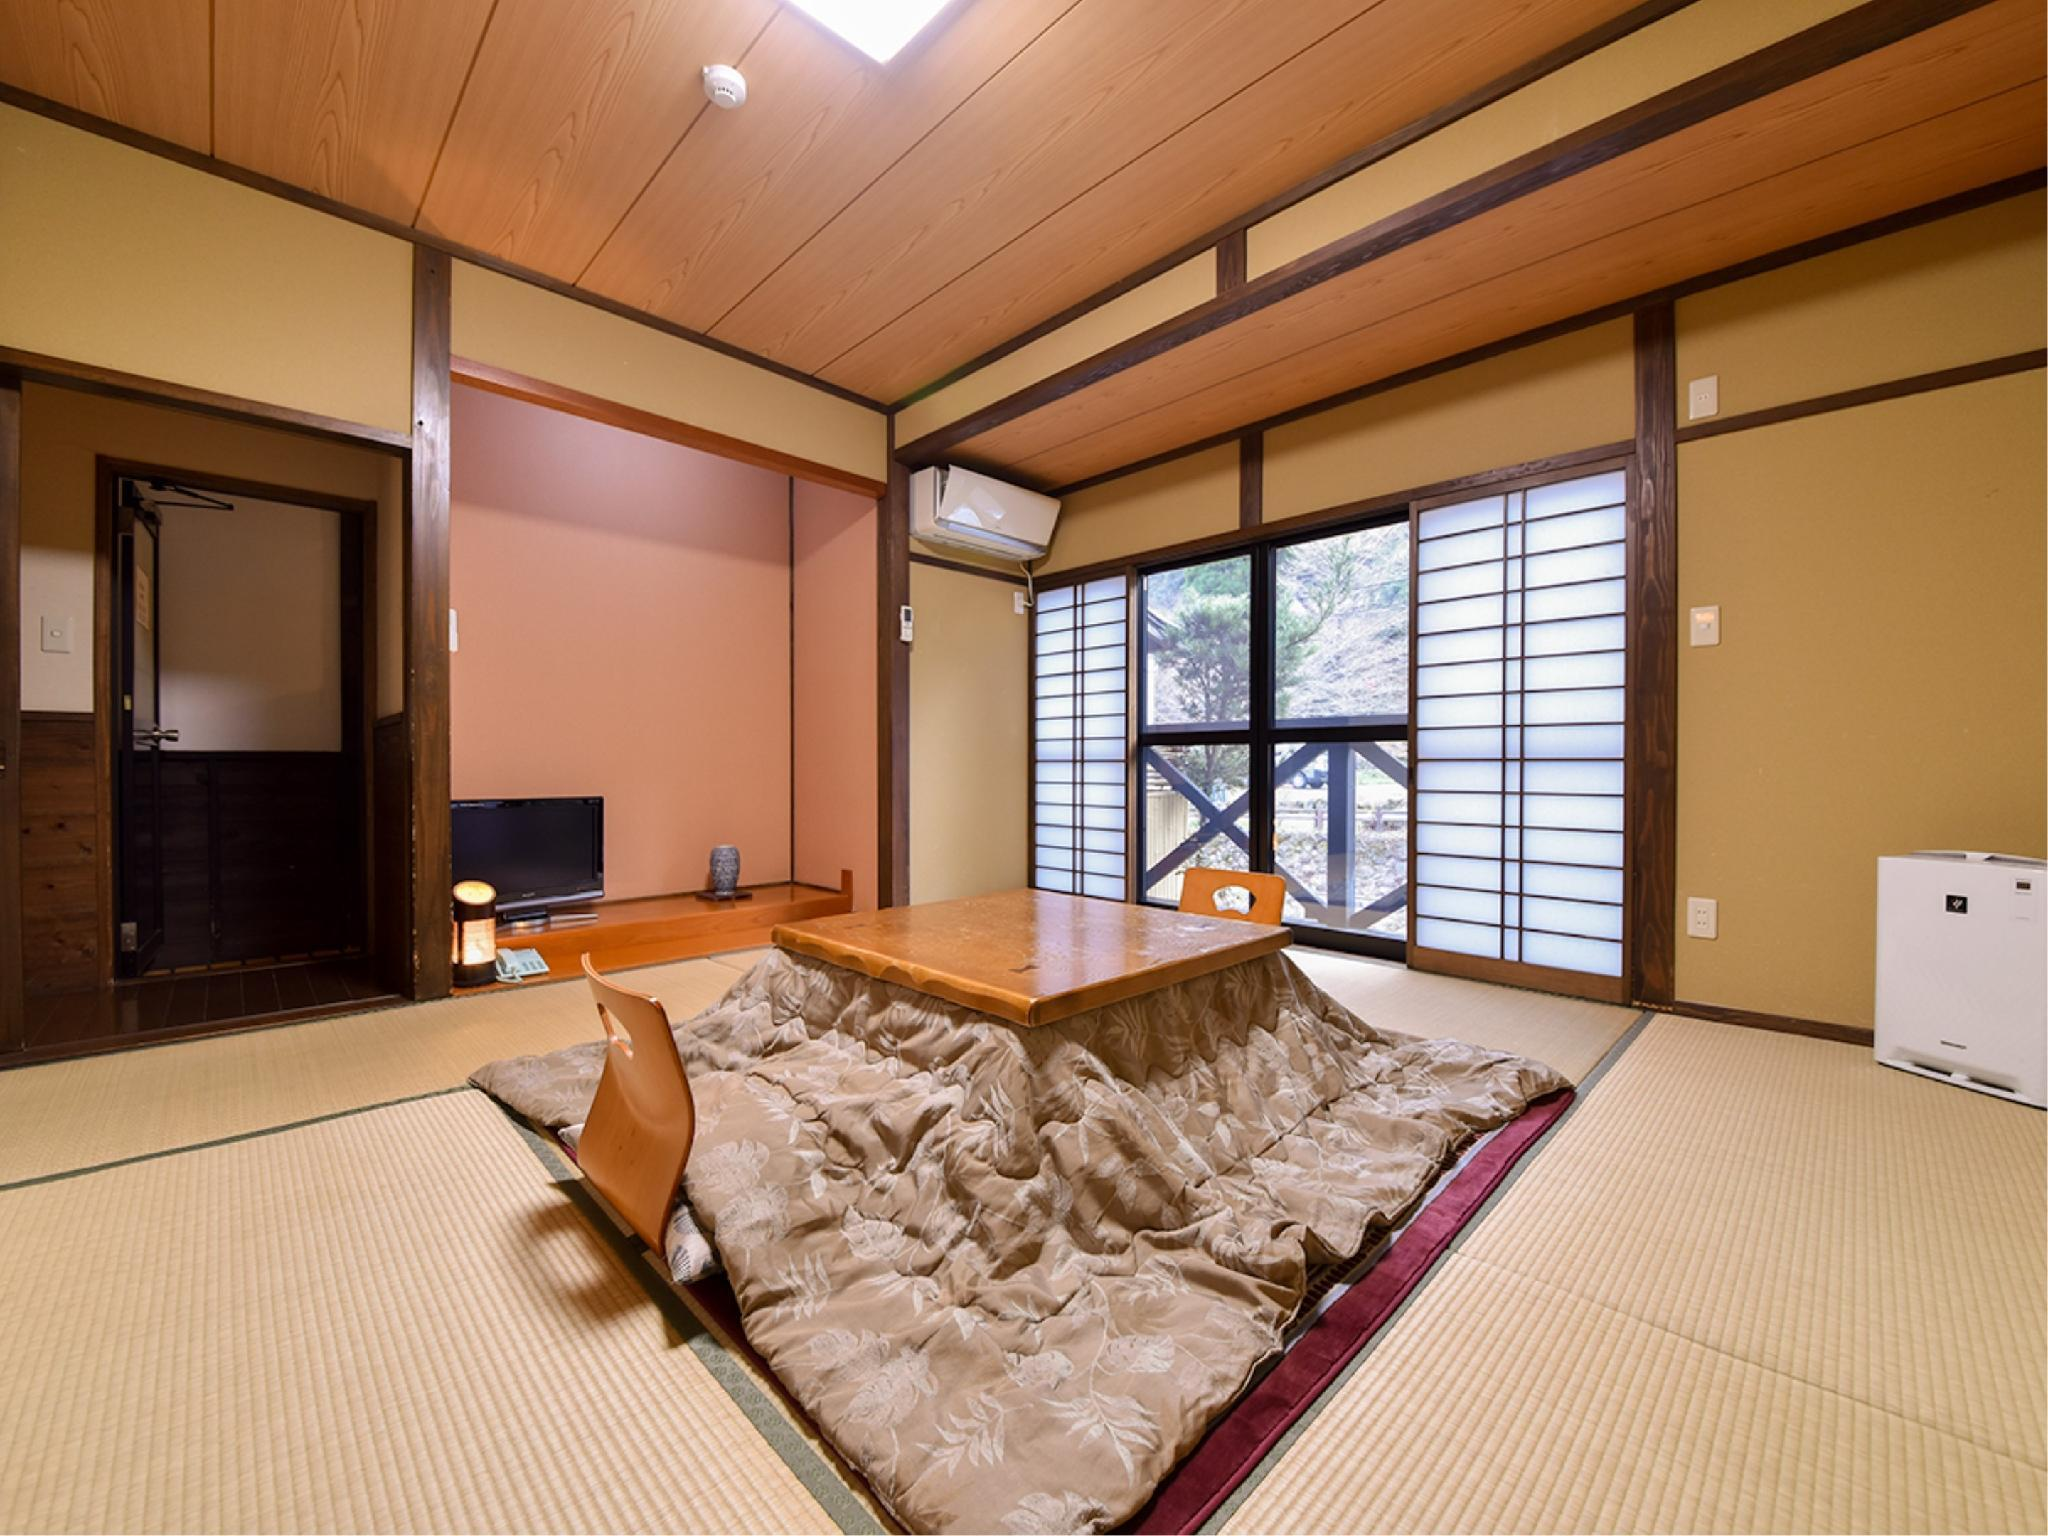 獨立房(和式房+露天風呂) (Detached Japanese-style Room with Open-air Bath)